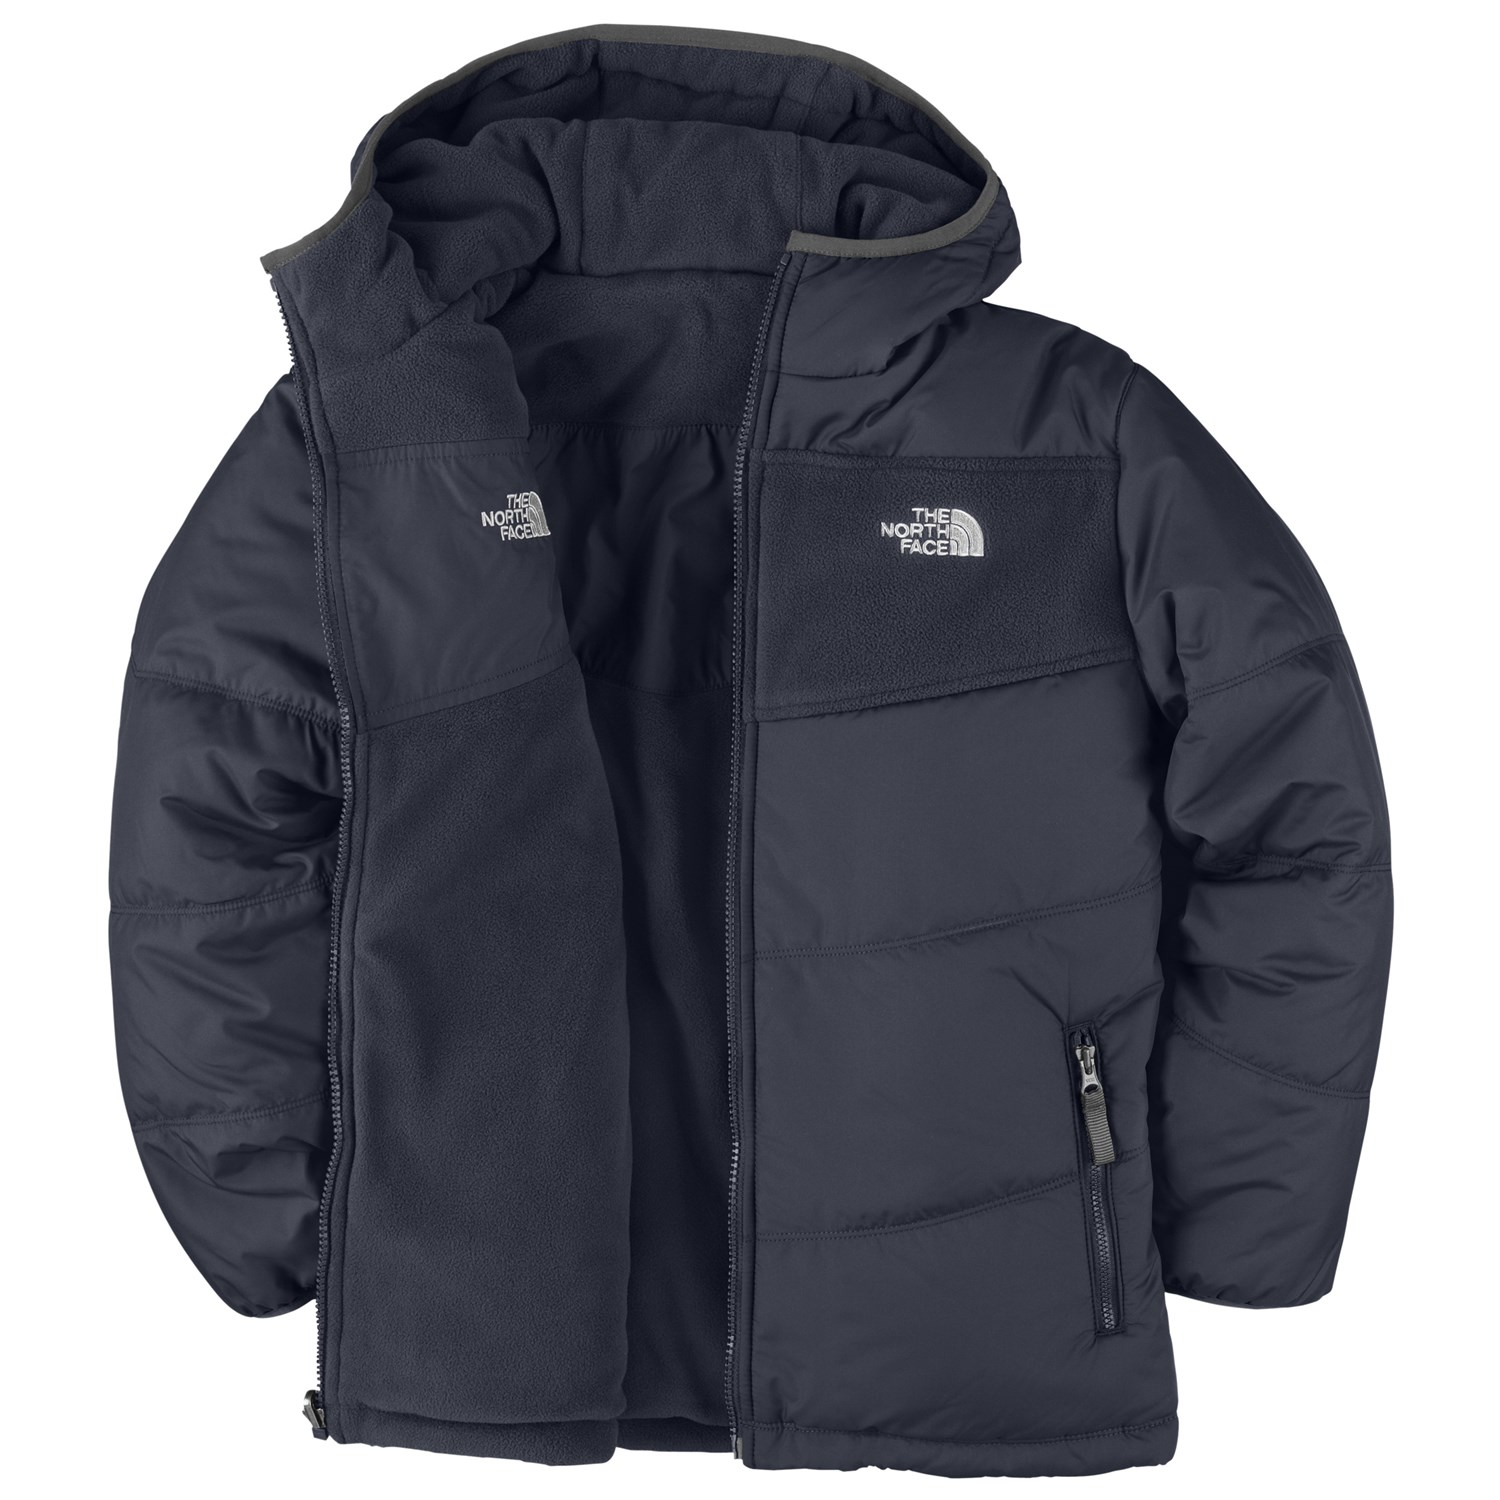 5b9ff6a168 The North Face Reversible True Or False Jacket -Youth - Boy s